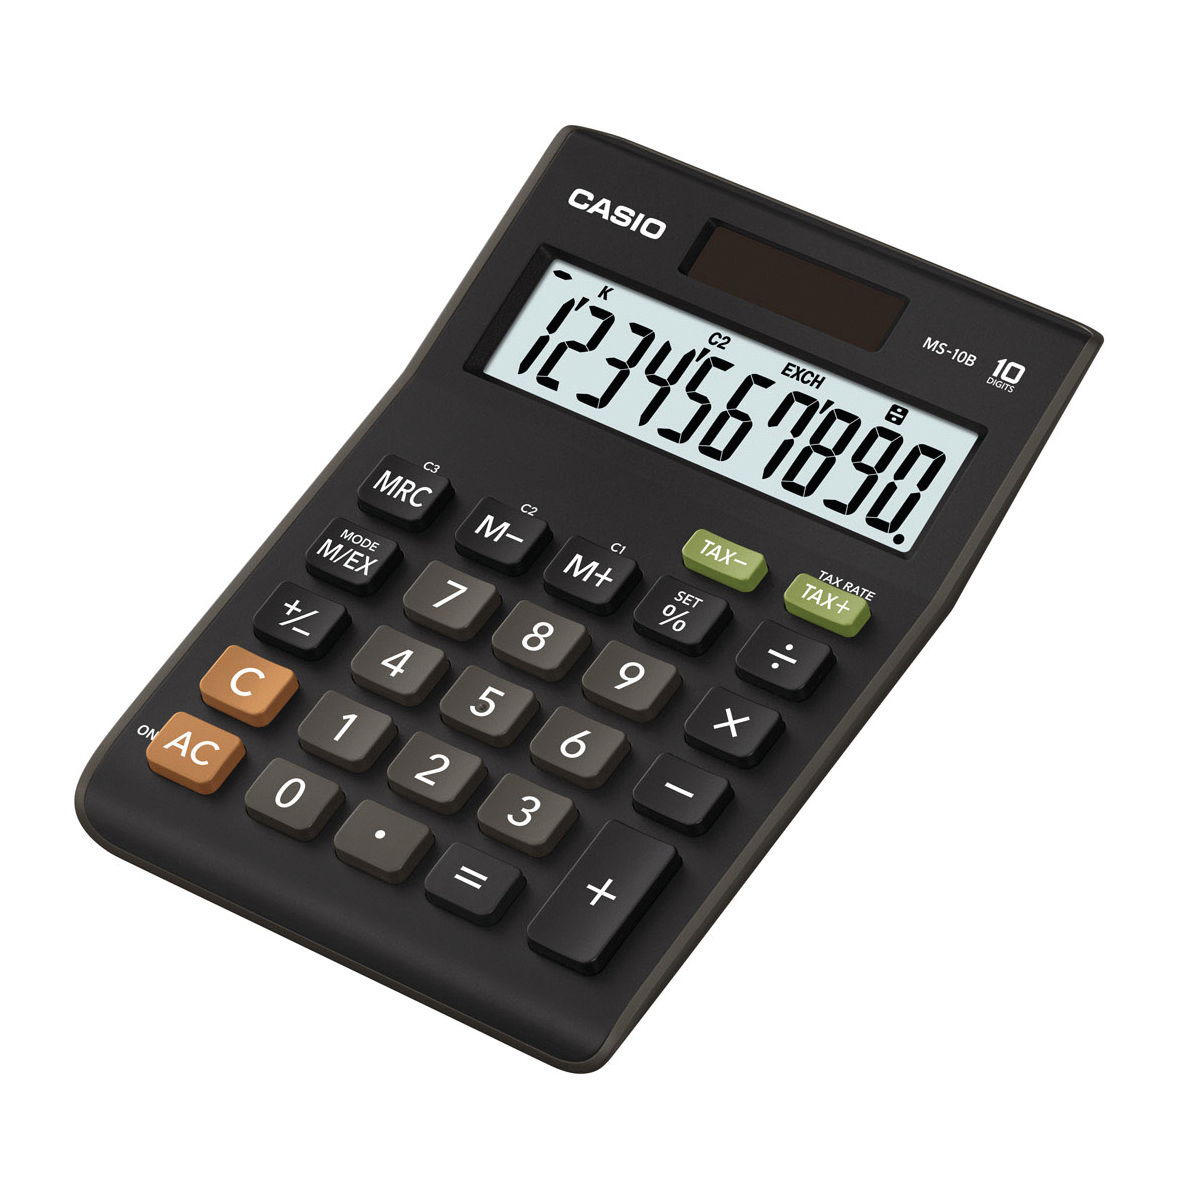 Calculators Casio Desktop Calculator 10 Digit 3 Key Memory Battery/Solar Power 103x29x147mm Black Ref MS-10B